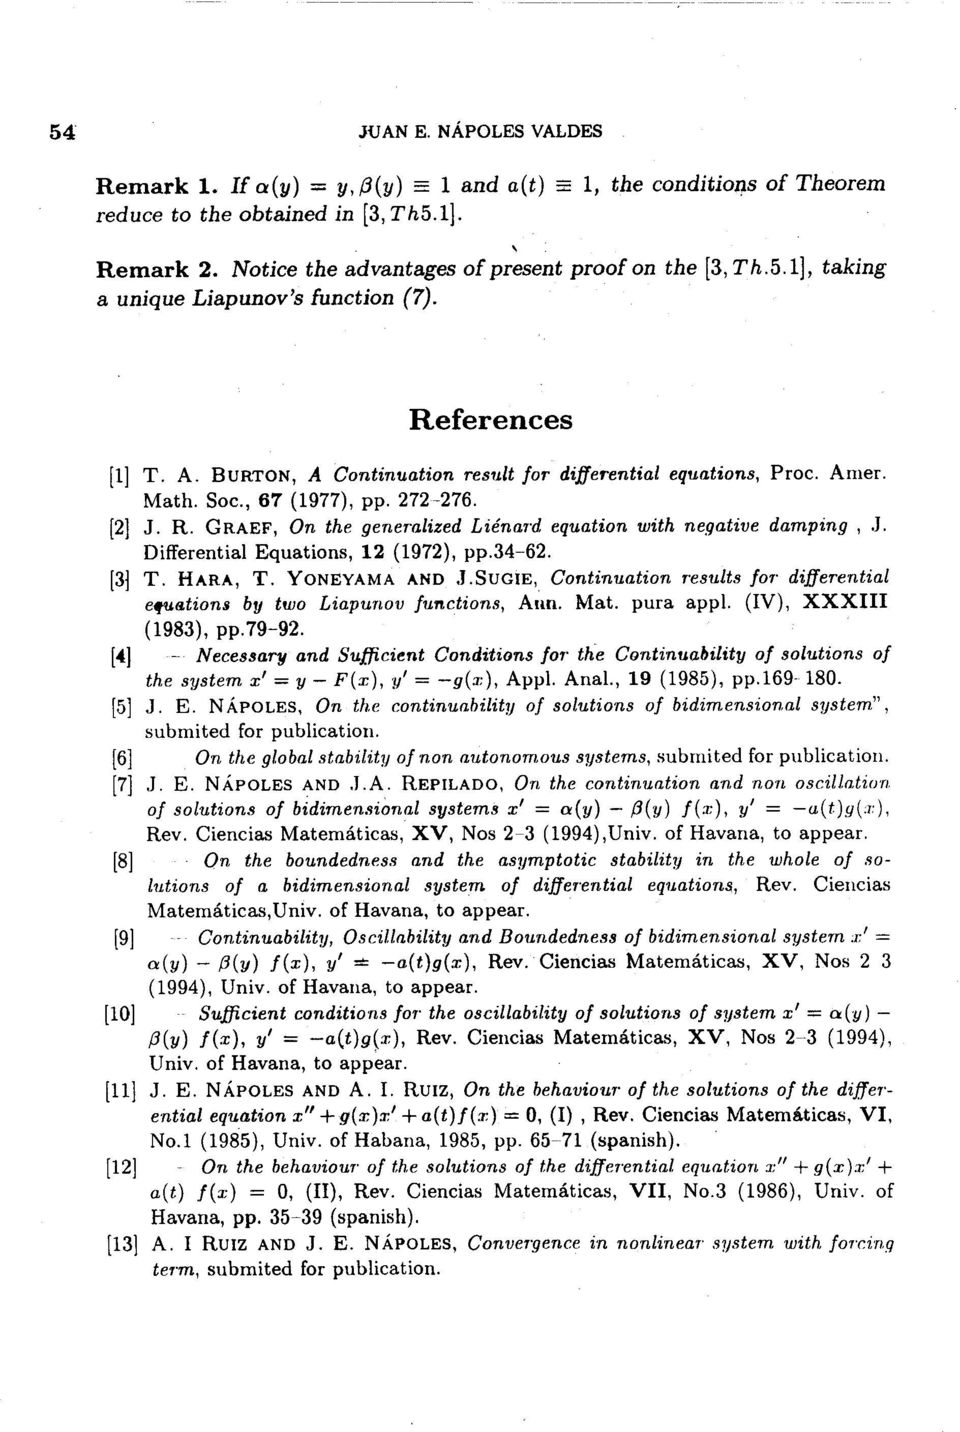 Differential Equations, 12 (1972), pp.34-62. [3J T. HARA, T. YONEYAMA ANO.J.SUGIE, Continuation r'esults 101' differential e~lj,tions by two Liapunov lunctions, A~m. Mat. pura appl.